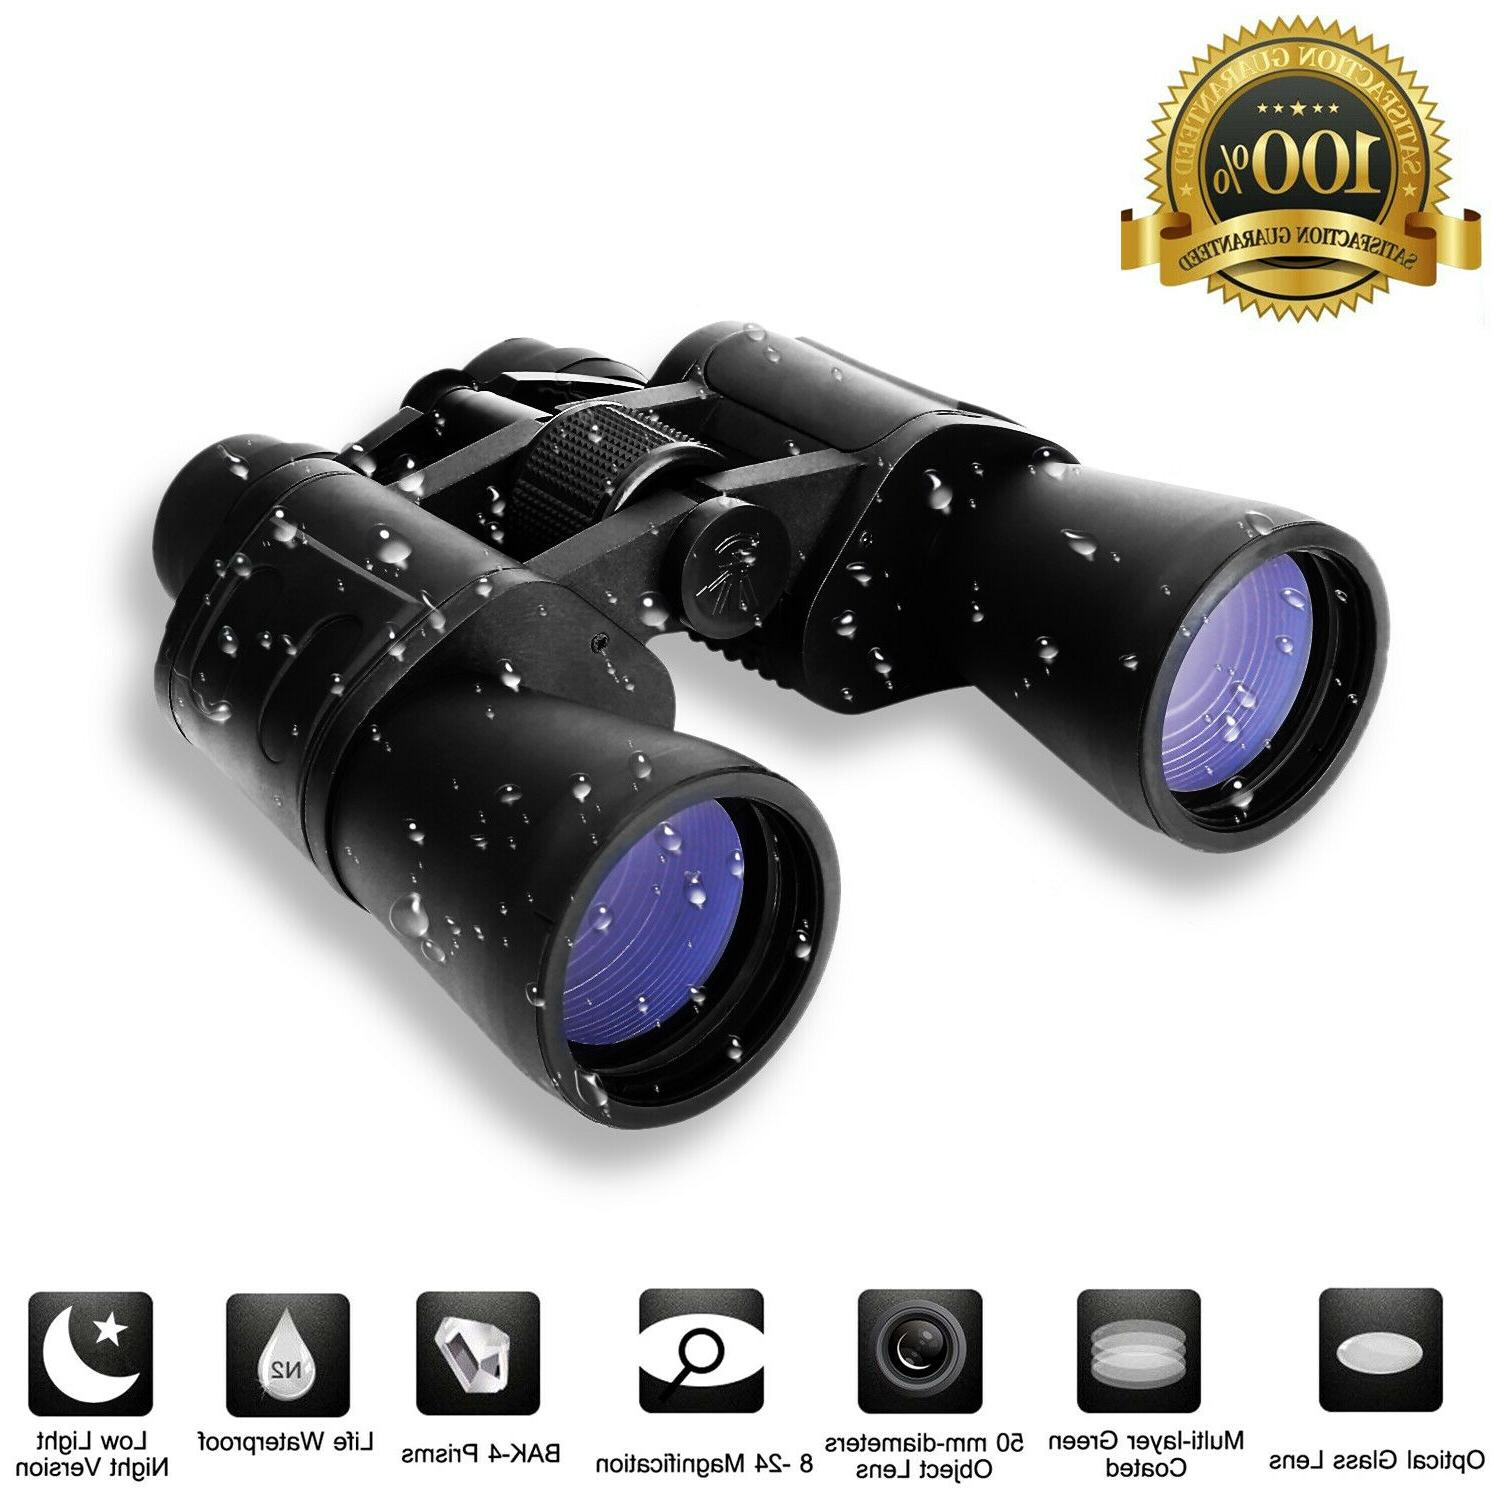 180x100 zoom day night powerful binoculars optics